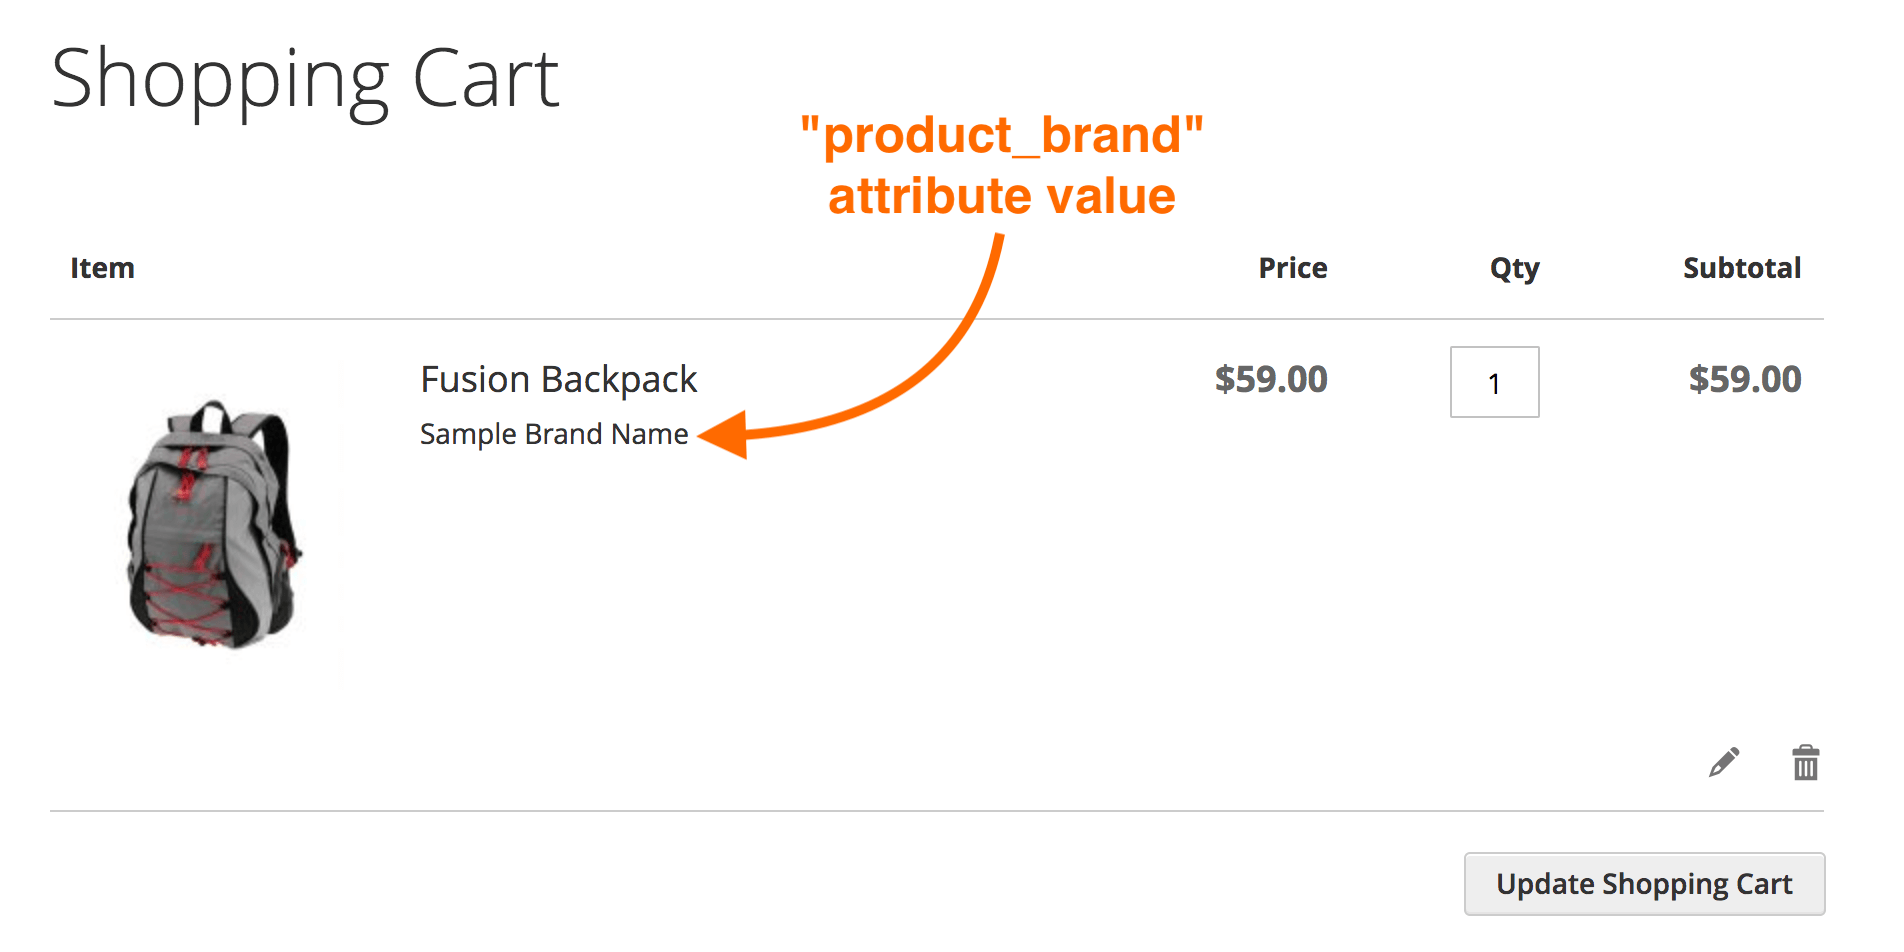 Display additional product details for cart item in Magento 2